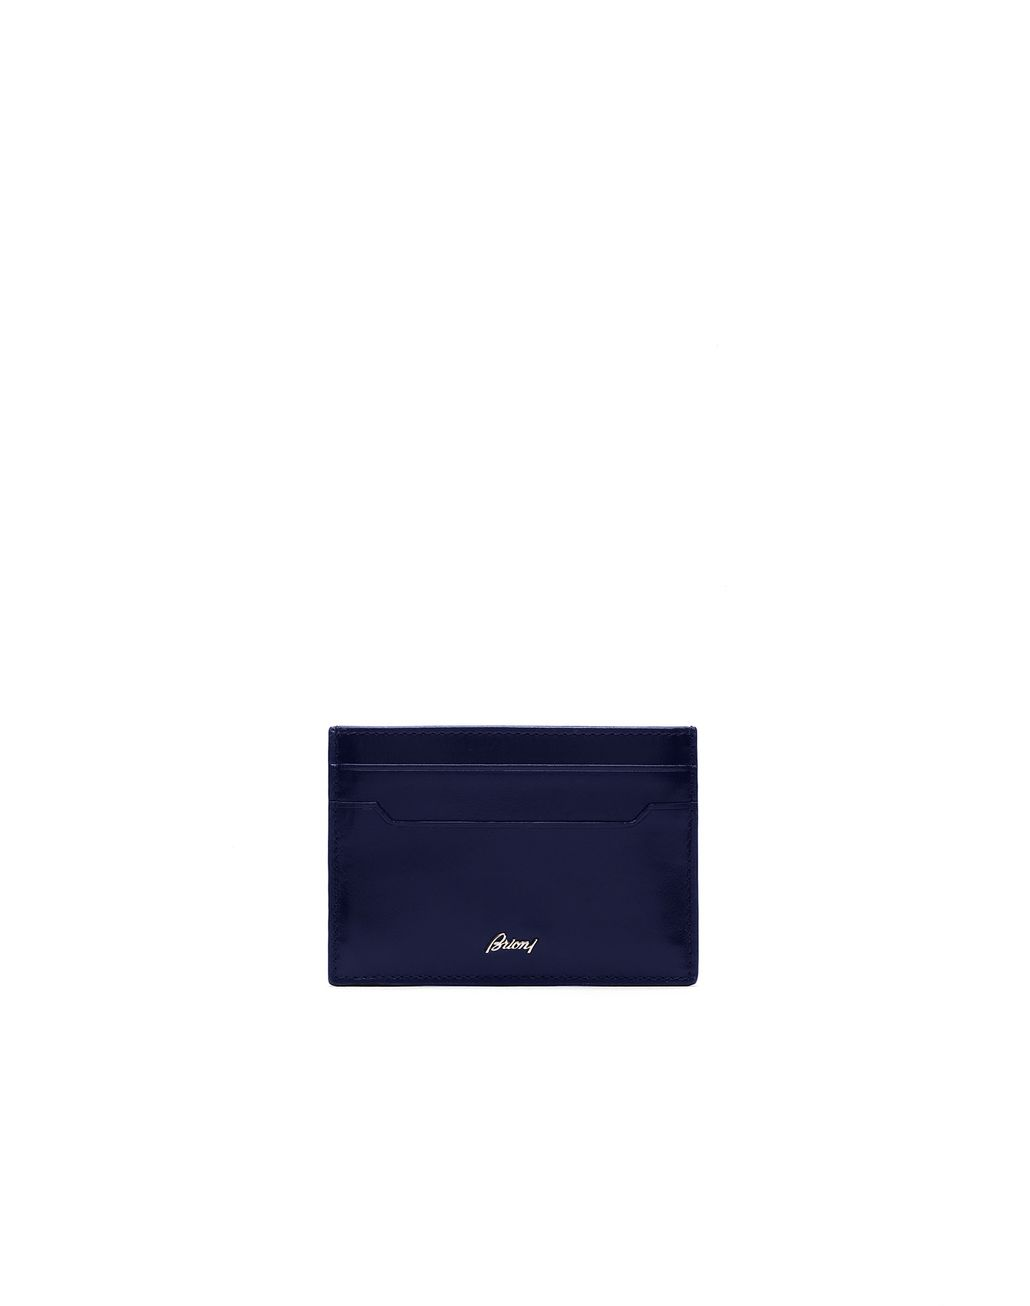 BRIONI Indigo Blue Clip Wallet Leather Goods Man f